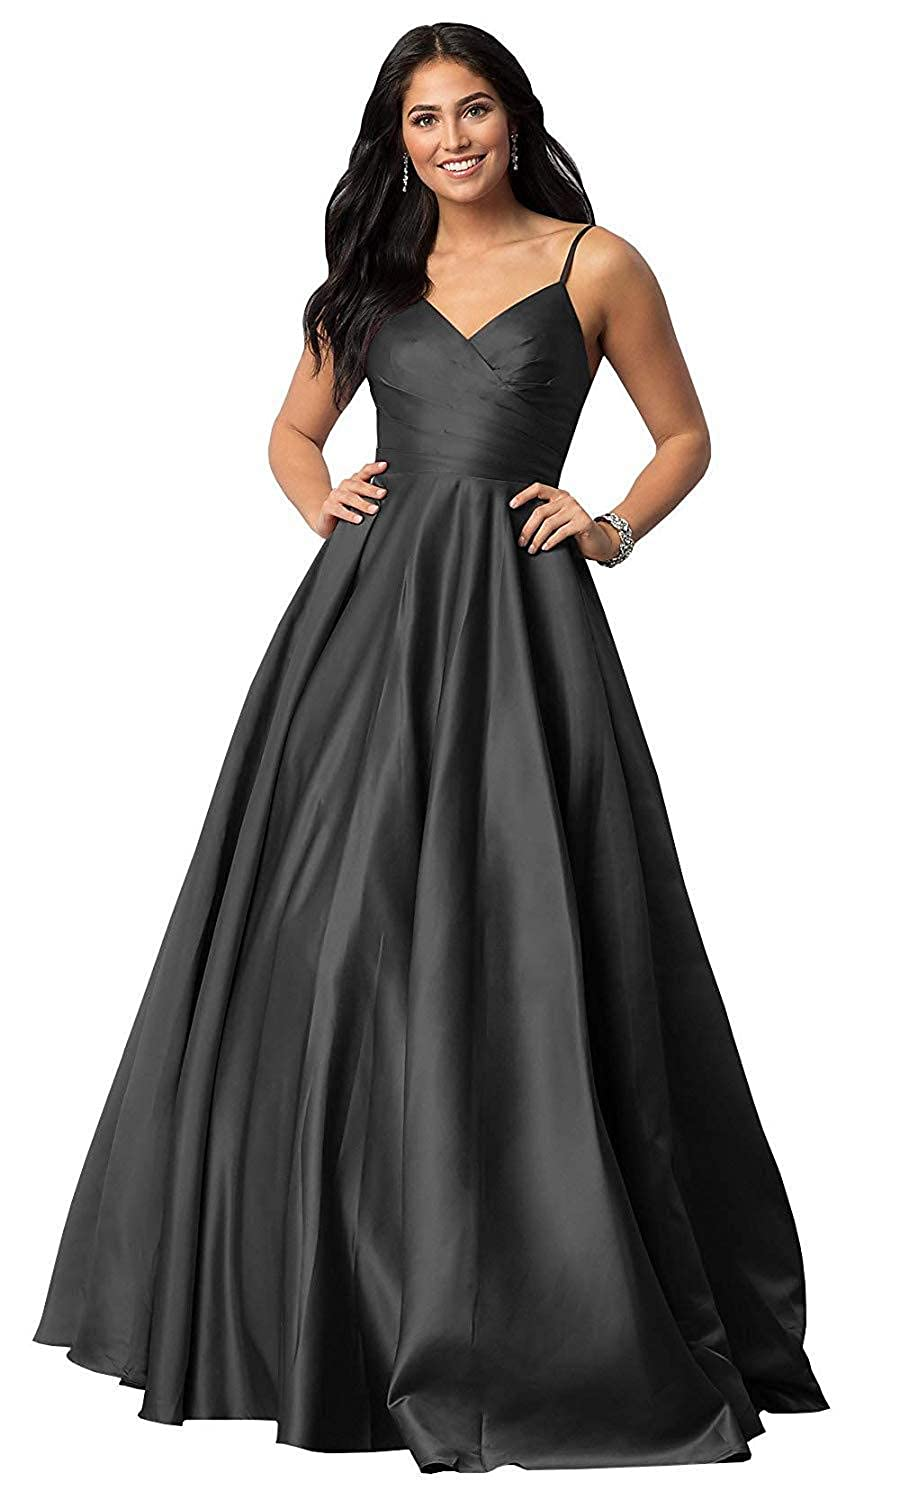 Black TTdamai Prom Dresses V Neck Satin Spaghetti Strap A Line Formal Evening Gowns with Pockets